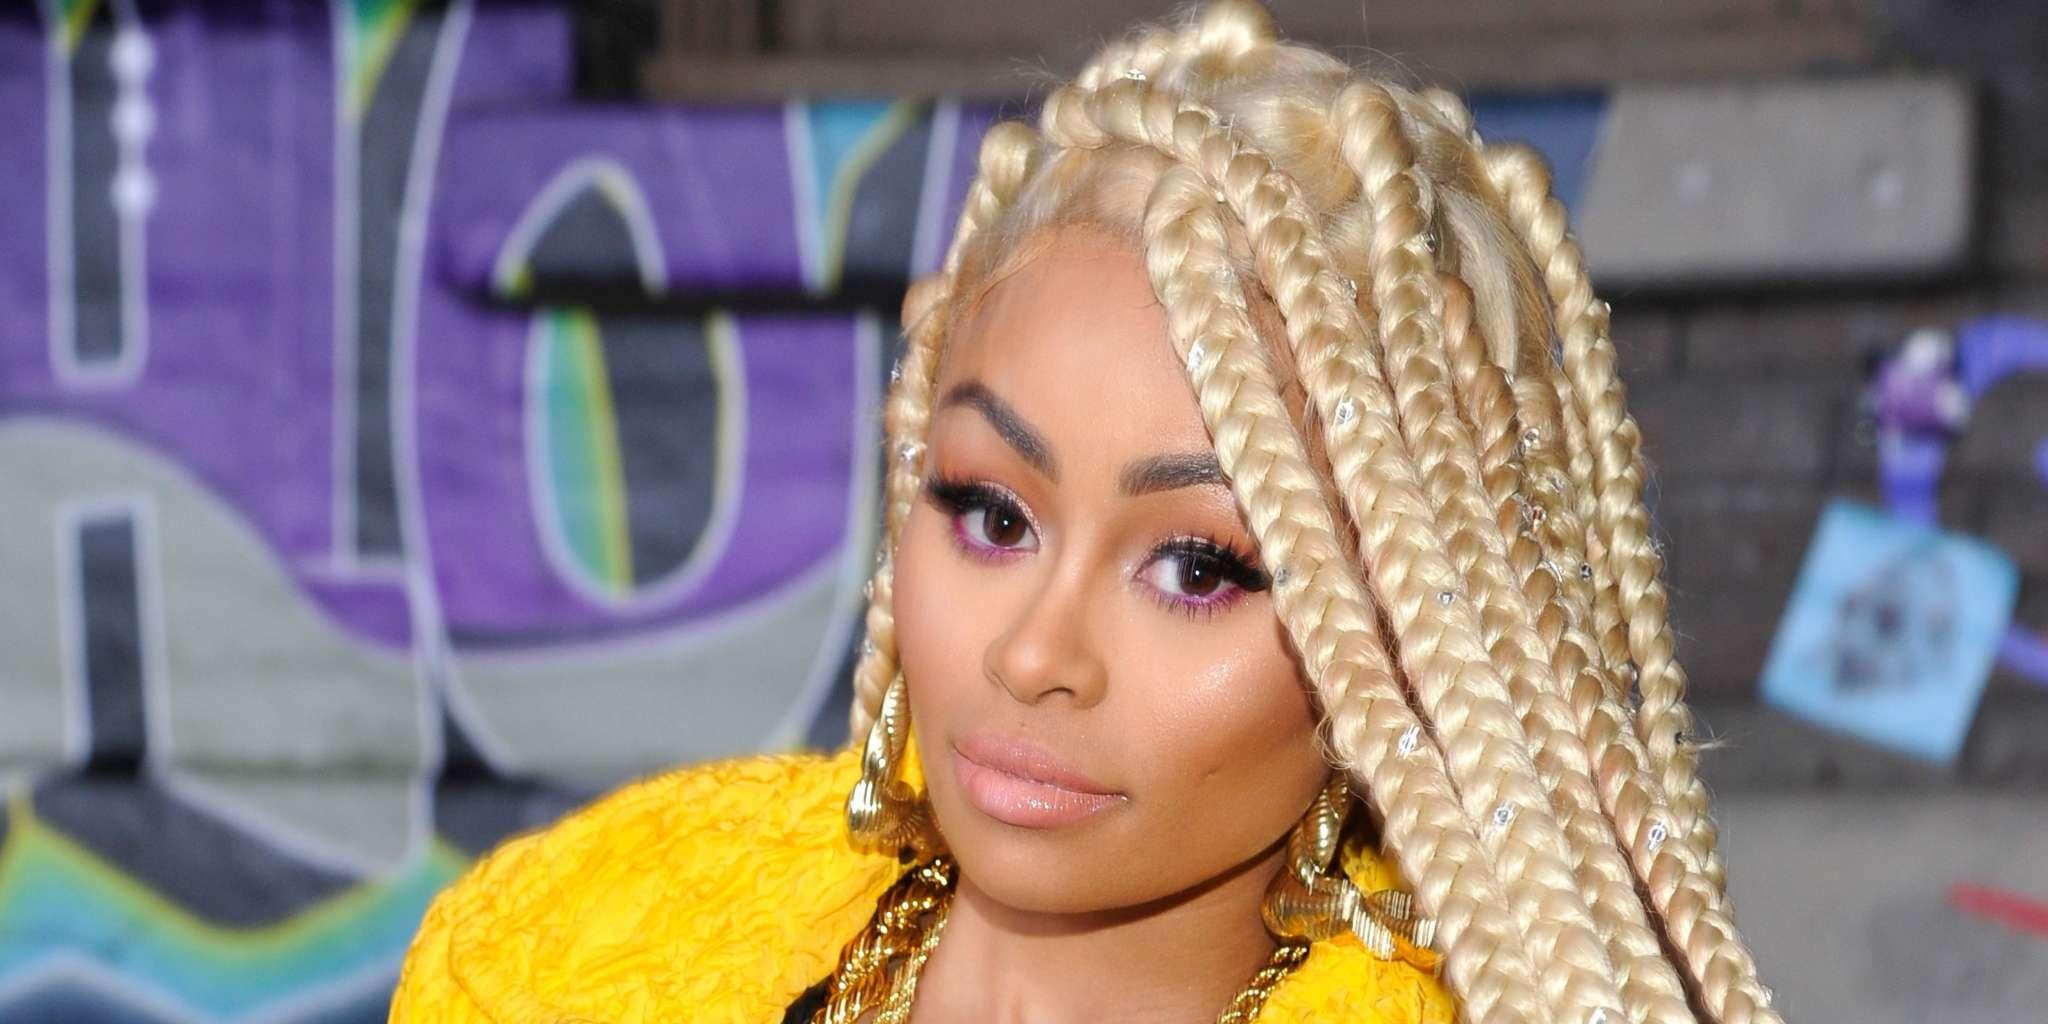 Blac Chyna Is Grateful To Her Fans For Making Her Docu-Series The No.1 Show On The Zeus Network